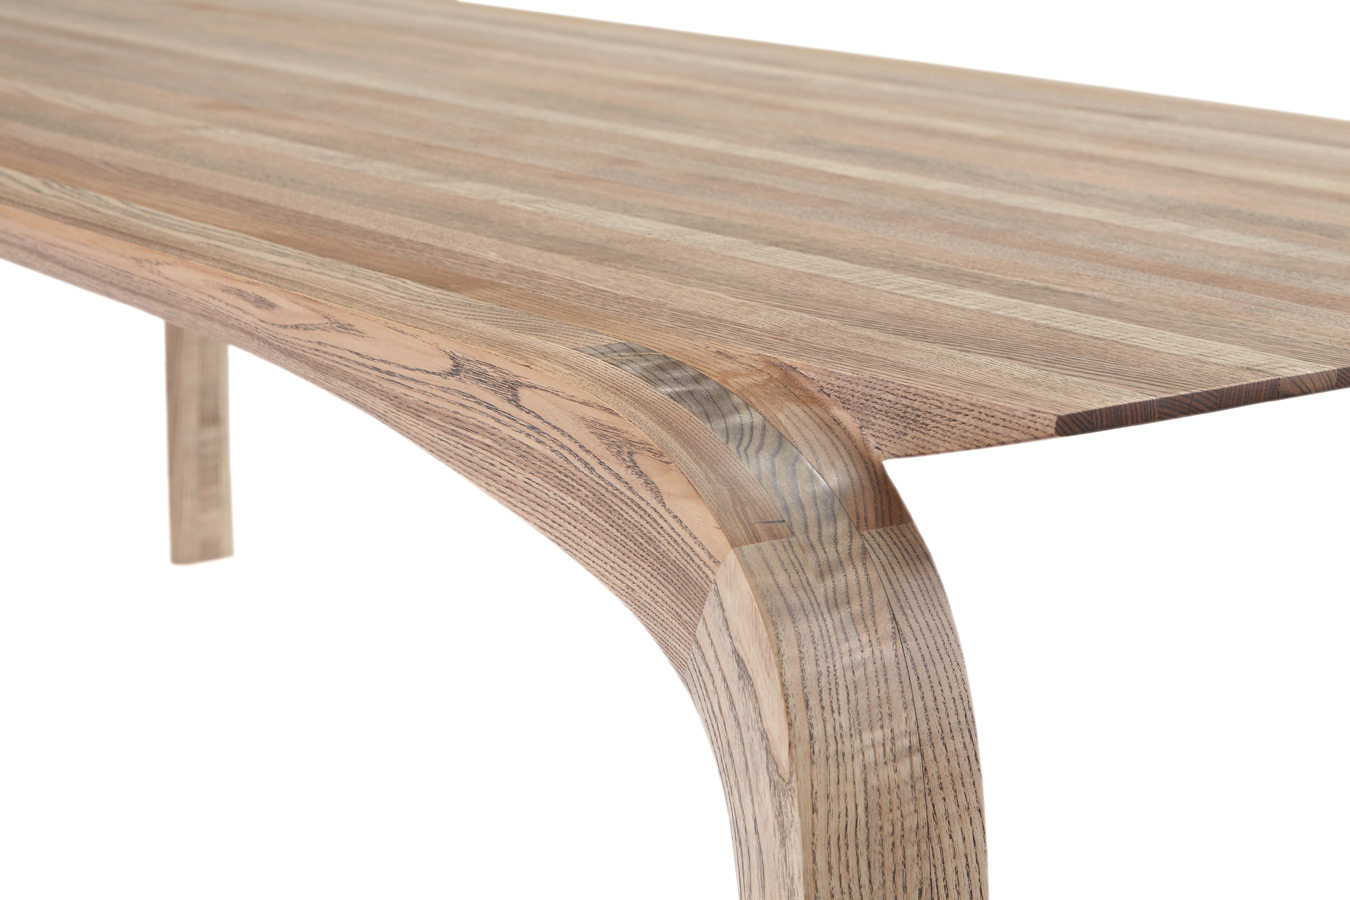 27_ONE-Dining-Table_4.jpg